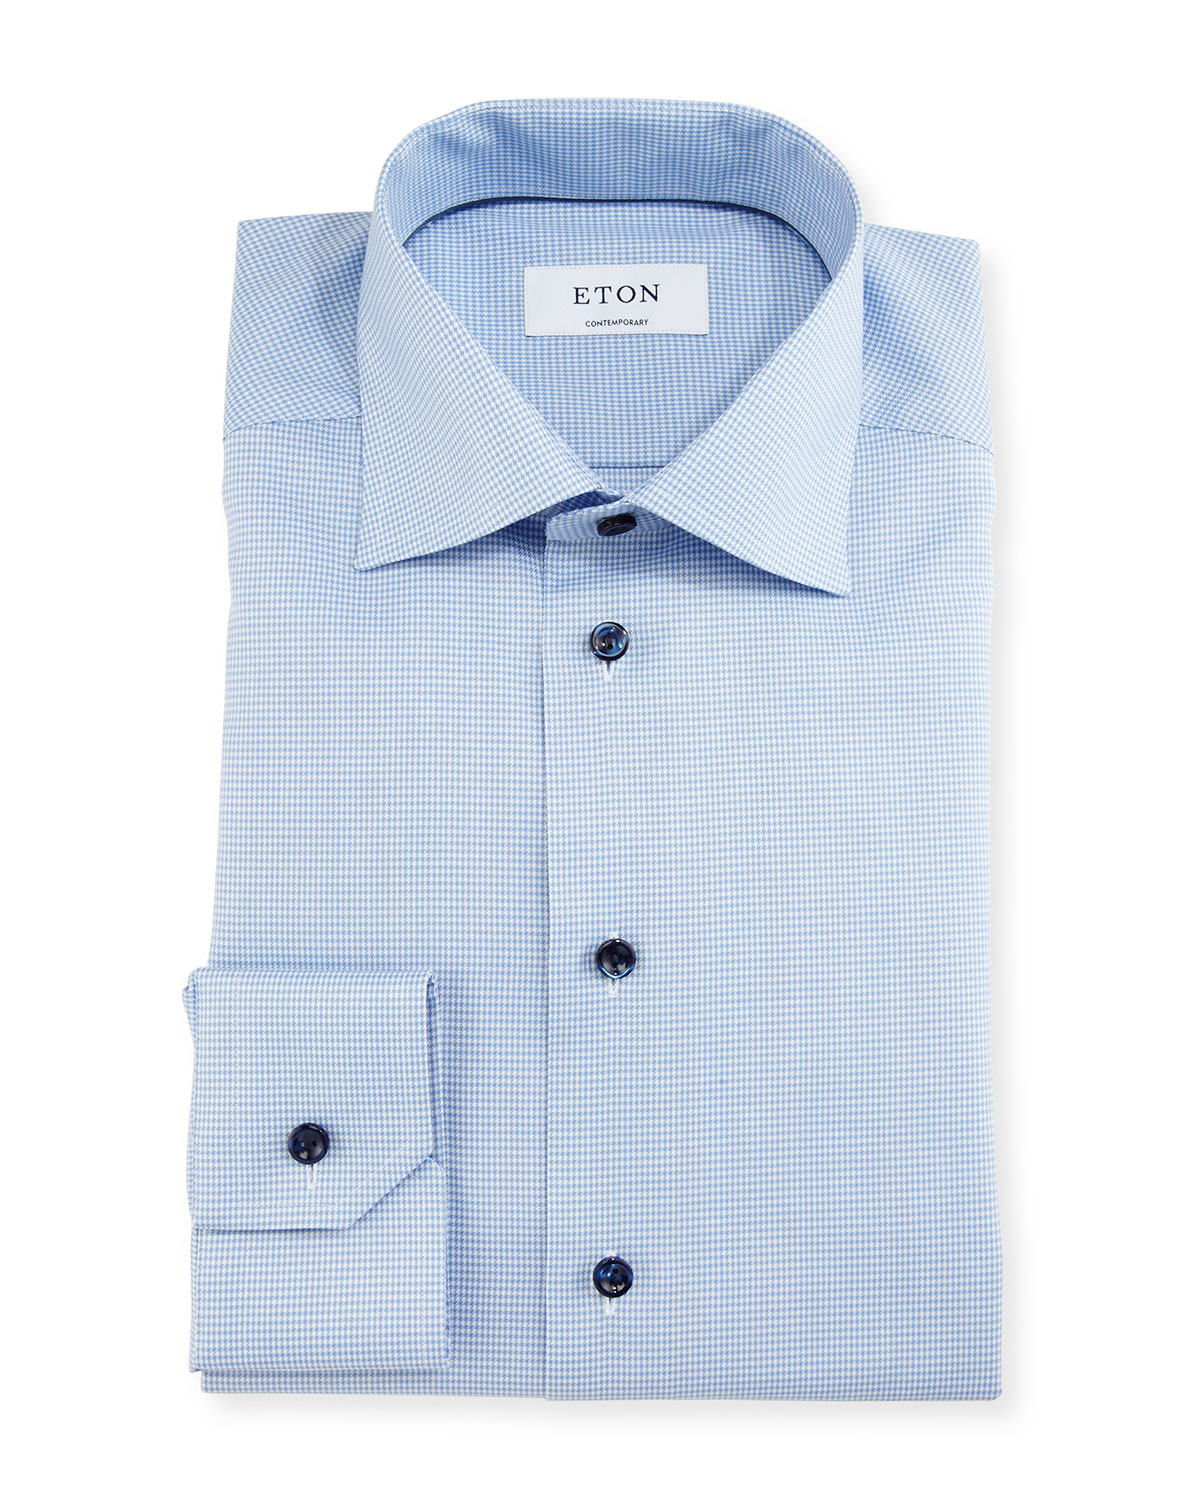 Low Shipping Fee Cheap Online Collections Contemporary fit Light Blue Hounds Tooth Shirt Eton Free Shipping Cheap Quality Discount Prices Amazing Price For Sale N2MAbGOp6